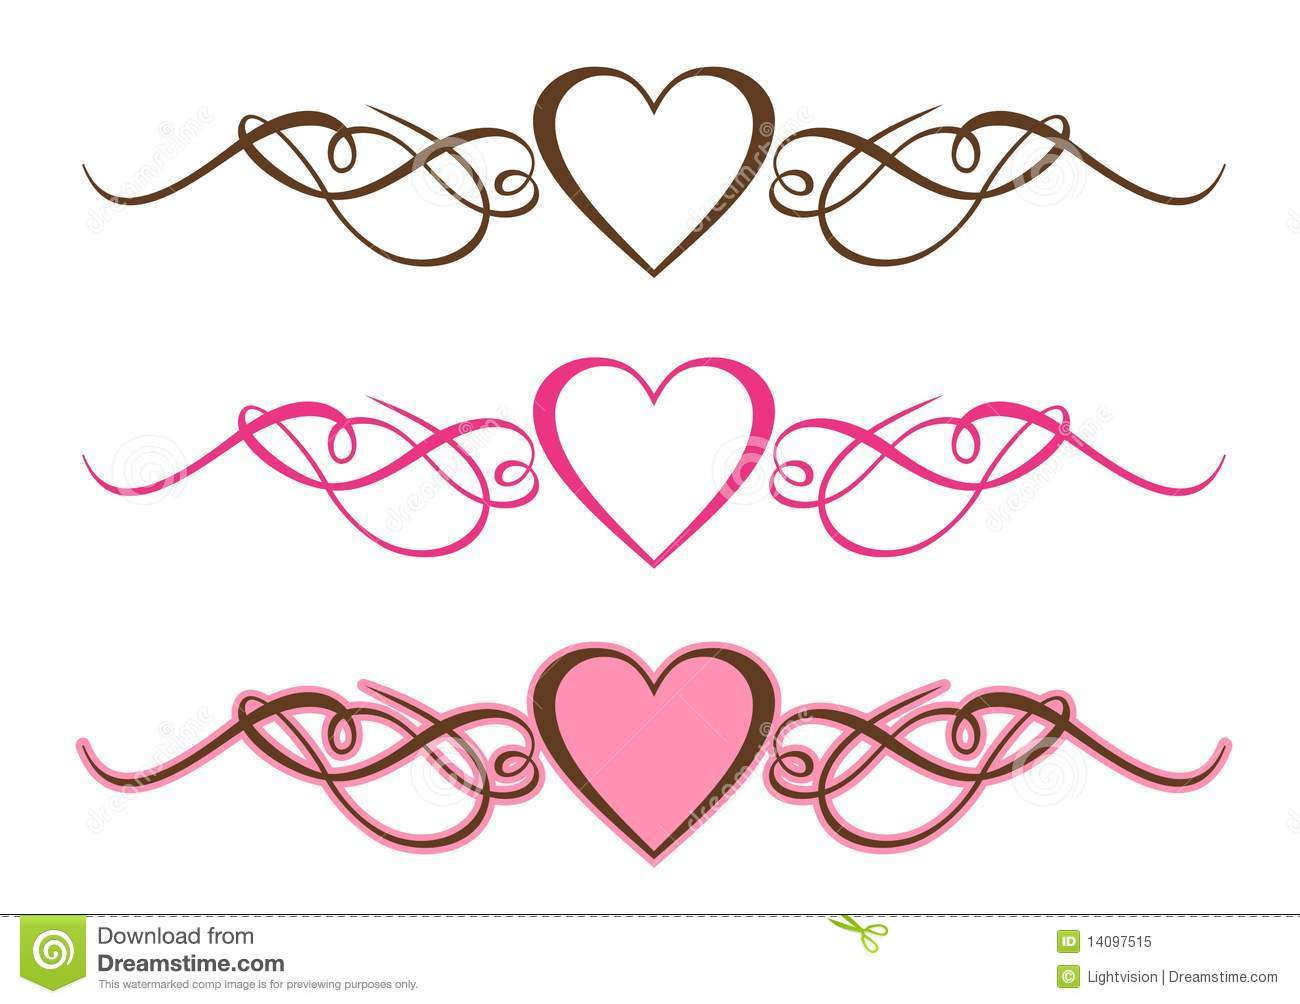 Free Scrollwork Heart Cliparts, Download Free Clip Art, Free Clip.